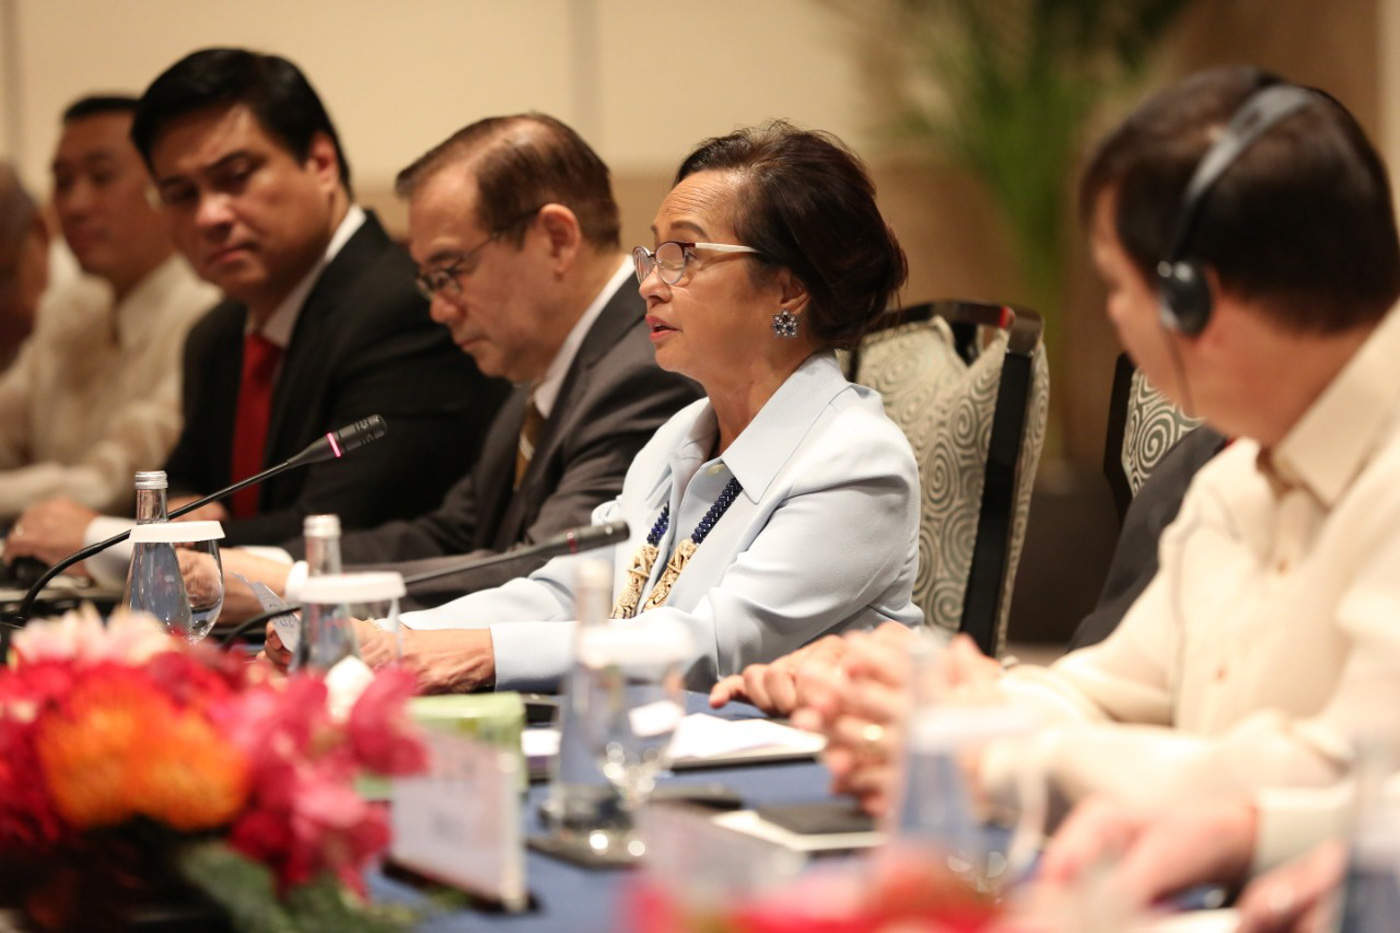 MEETING XI. House Speaker Gloria Macapagal Arroyo joins Congress leaders in a meeting with Chinese President Xi Jinping. Photo courtesy of Arroyo's office